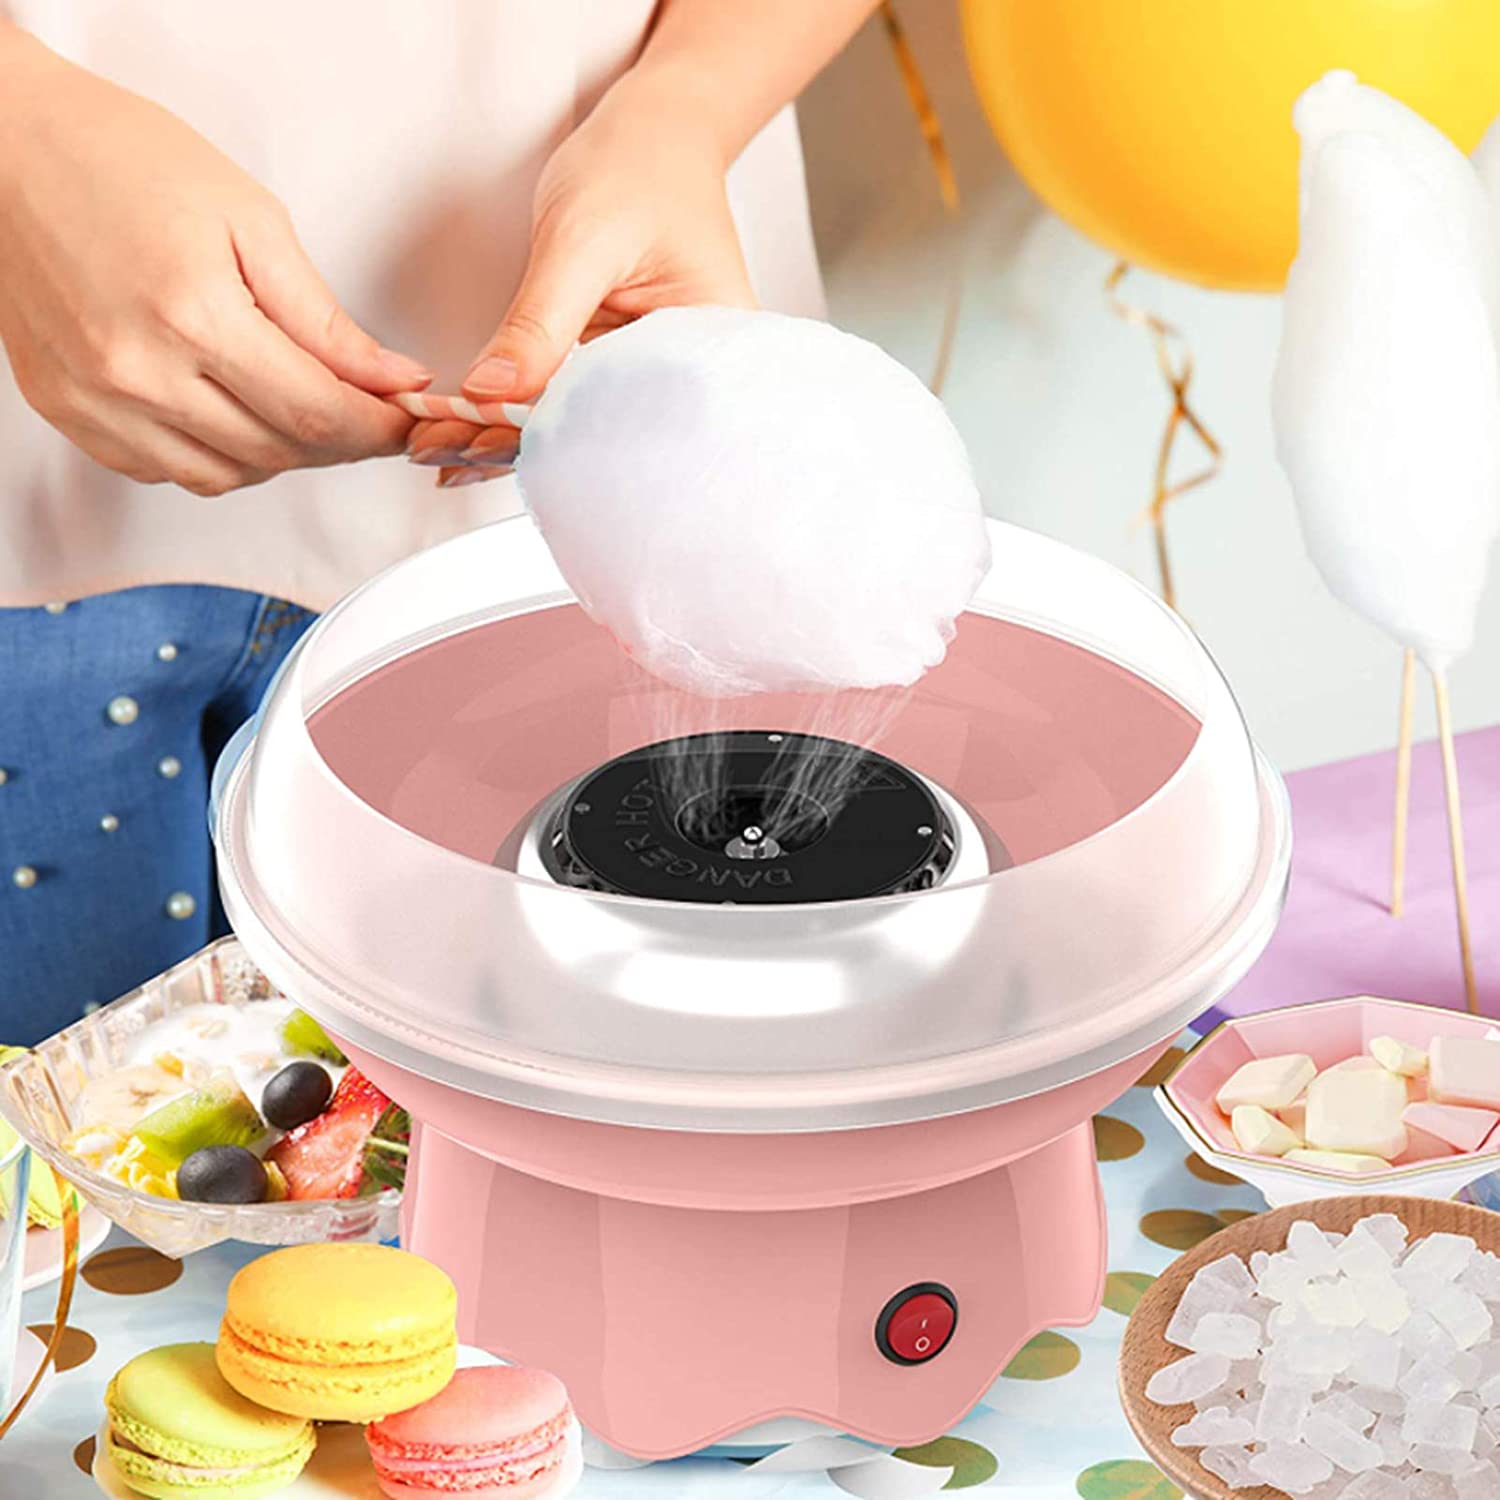 Peitten Cotton Candy Machine for Kids Makers, Pinks 2 Electric Automatic Cotton Candy Floss Maker with Splashproof Plate Stainless Steel Mini Children Sugar Cotton Candy Machine for Birthday